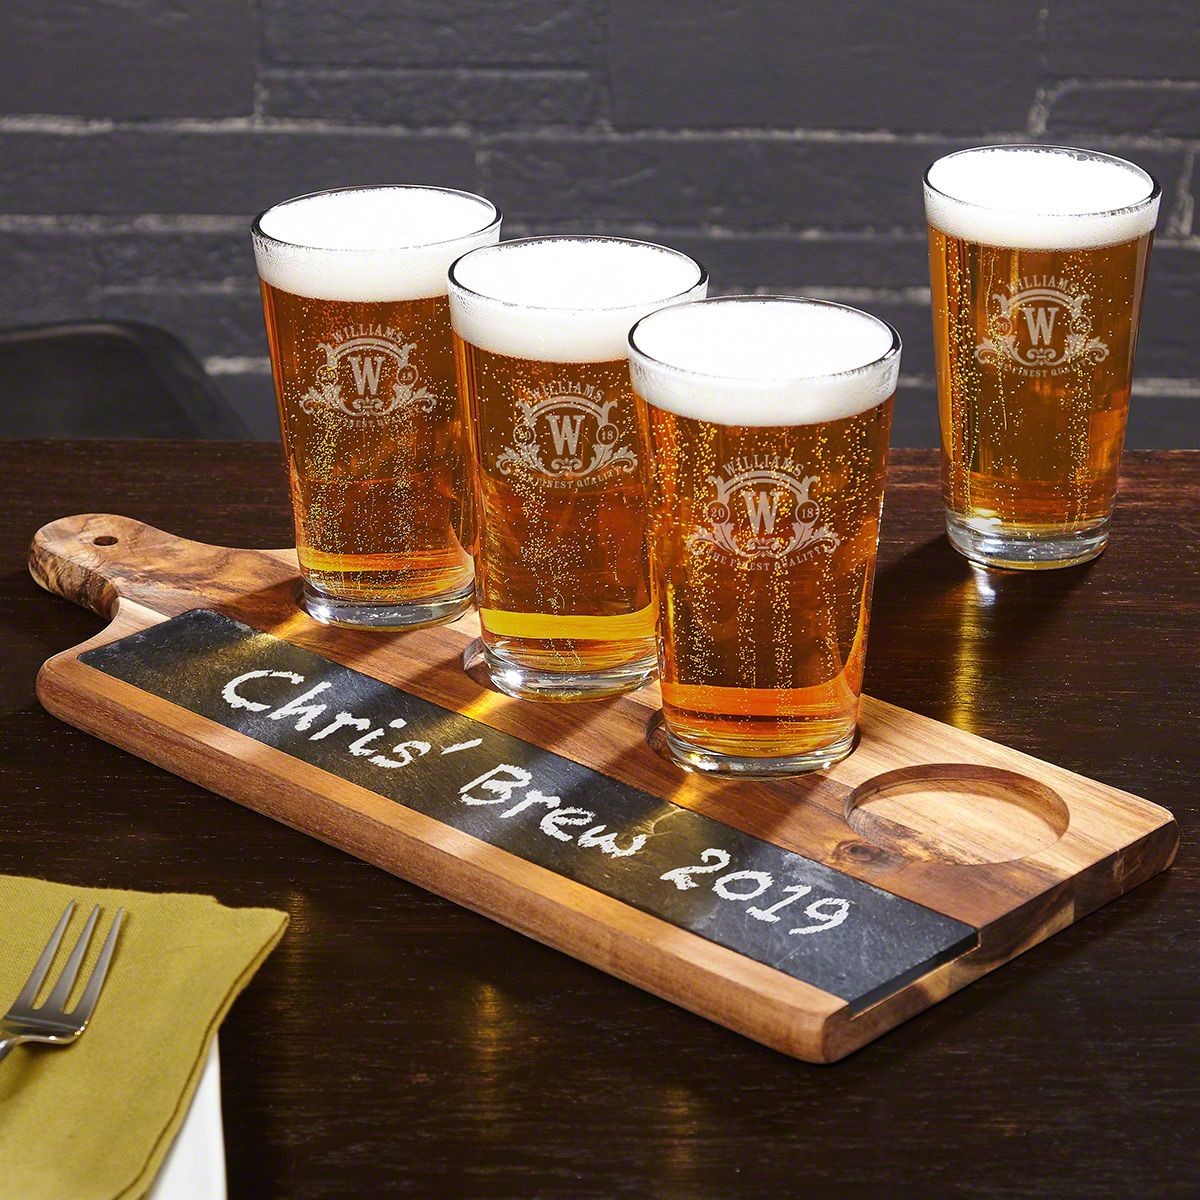 Westbrook Monogram Engraved Pint Glasses with Chalkboard Serving Tray